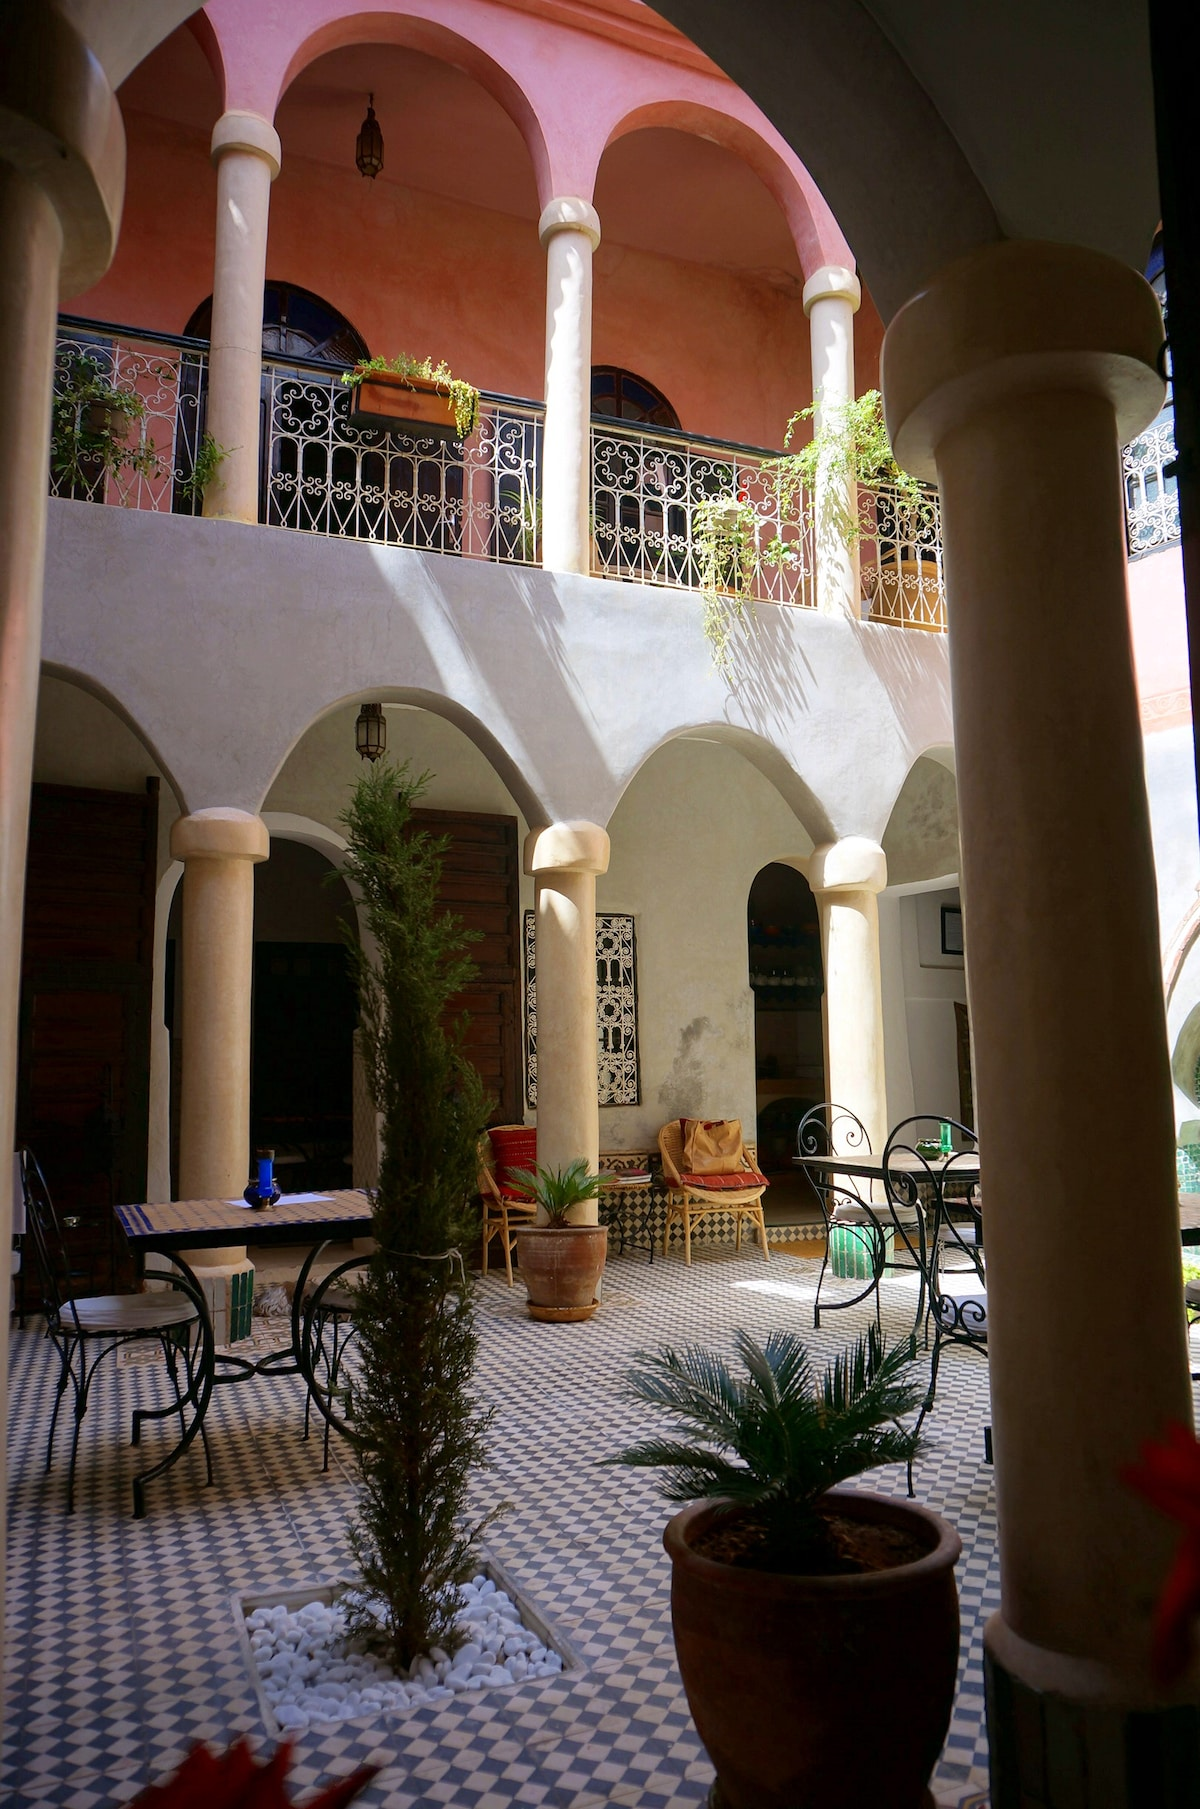 View through the Arches - Courtyard